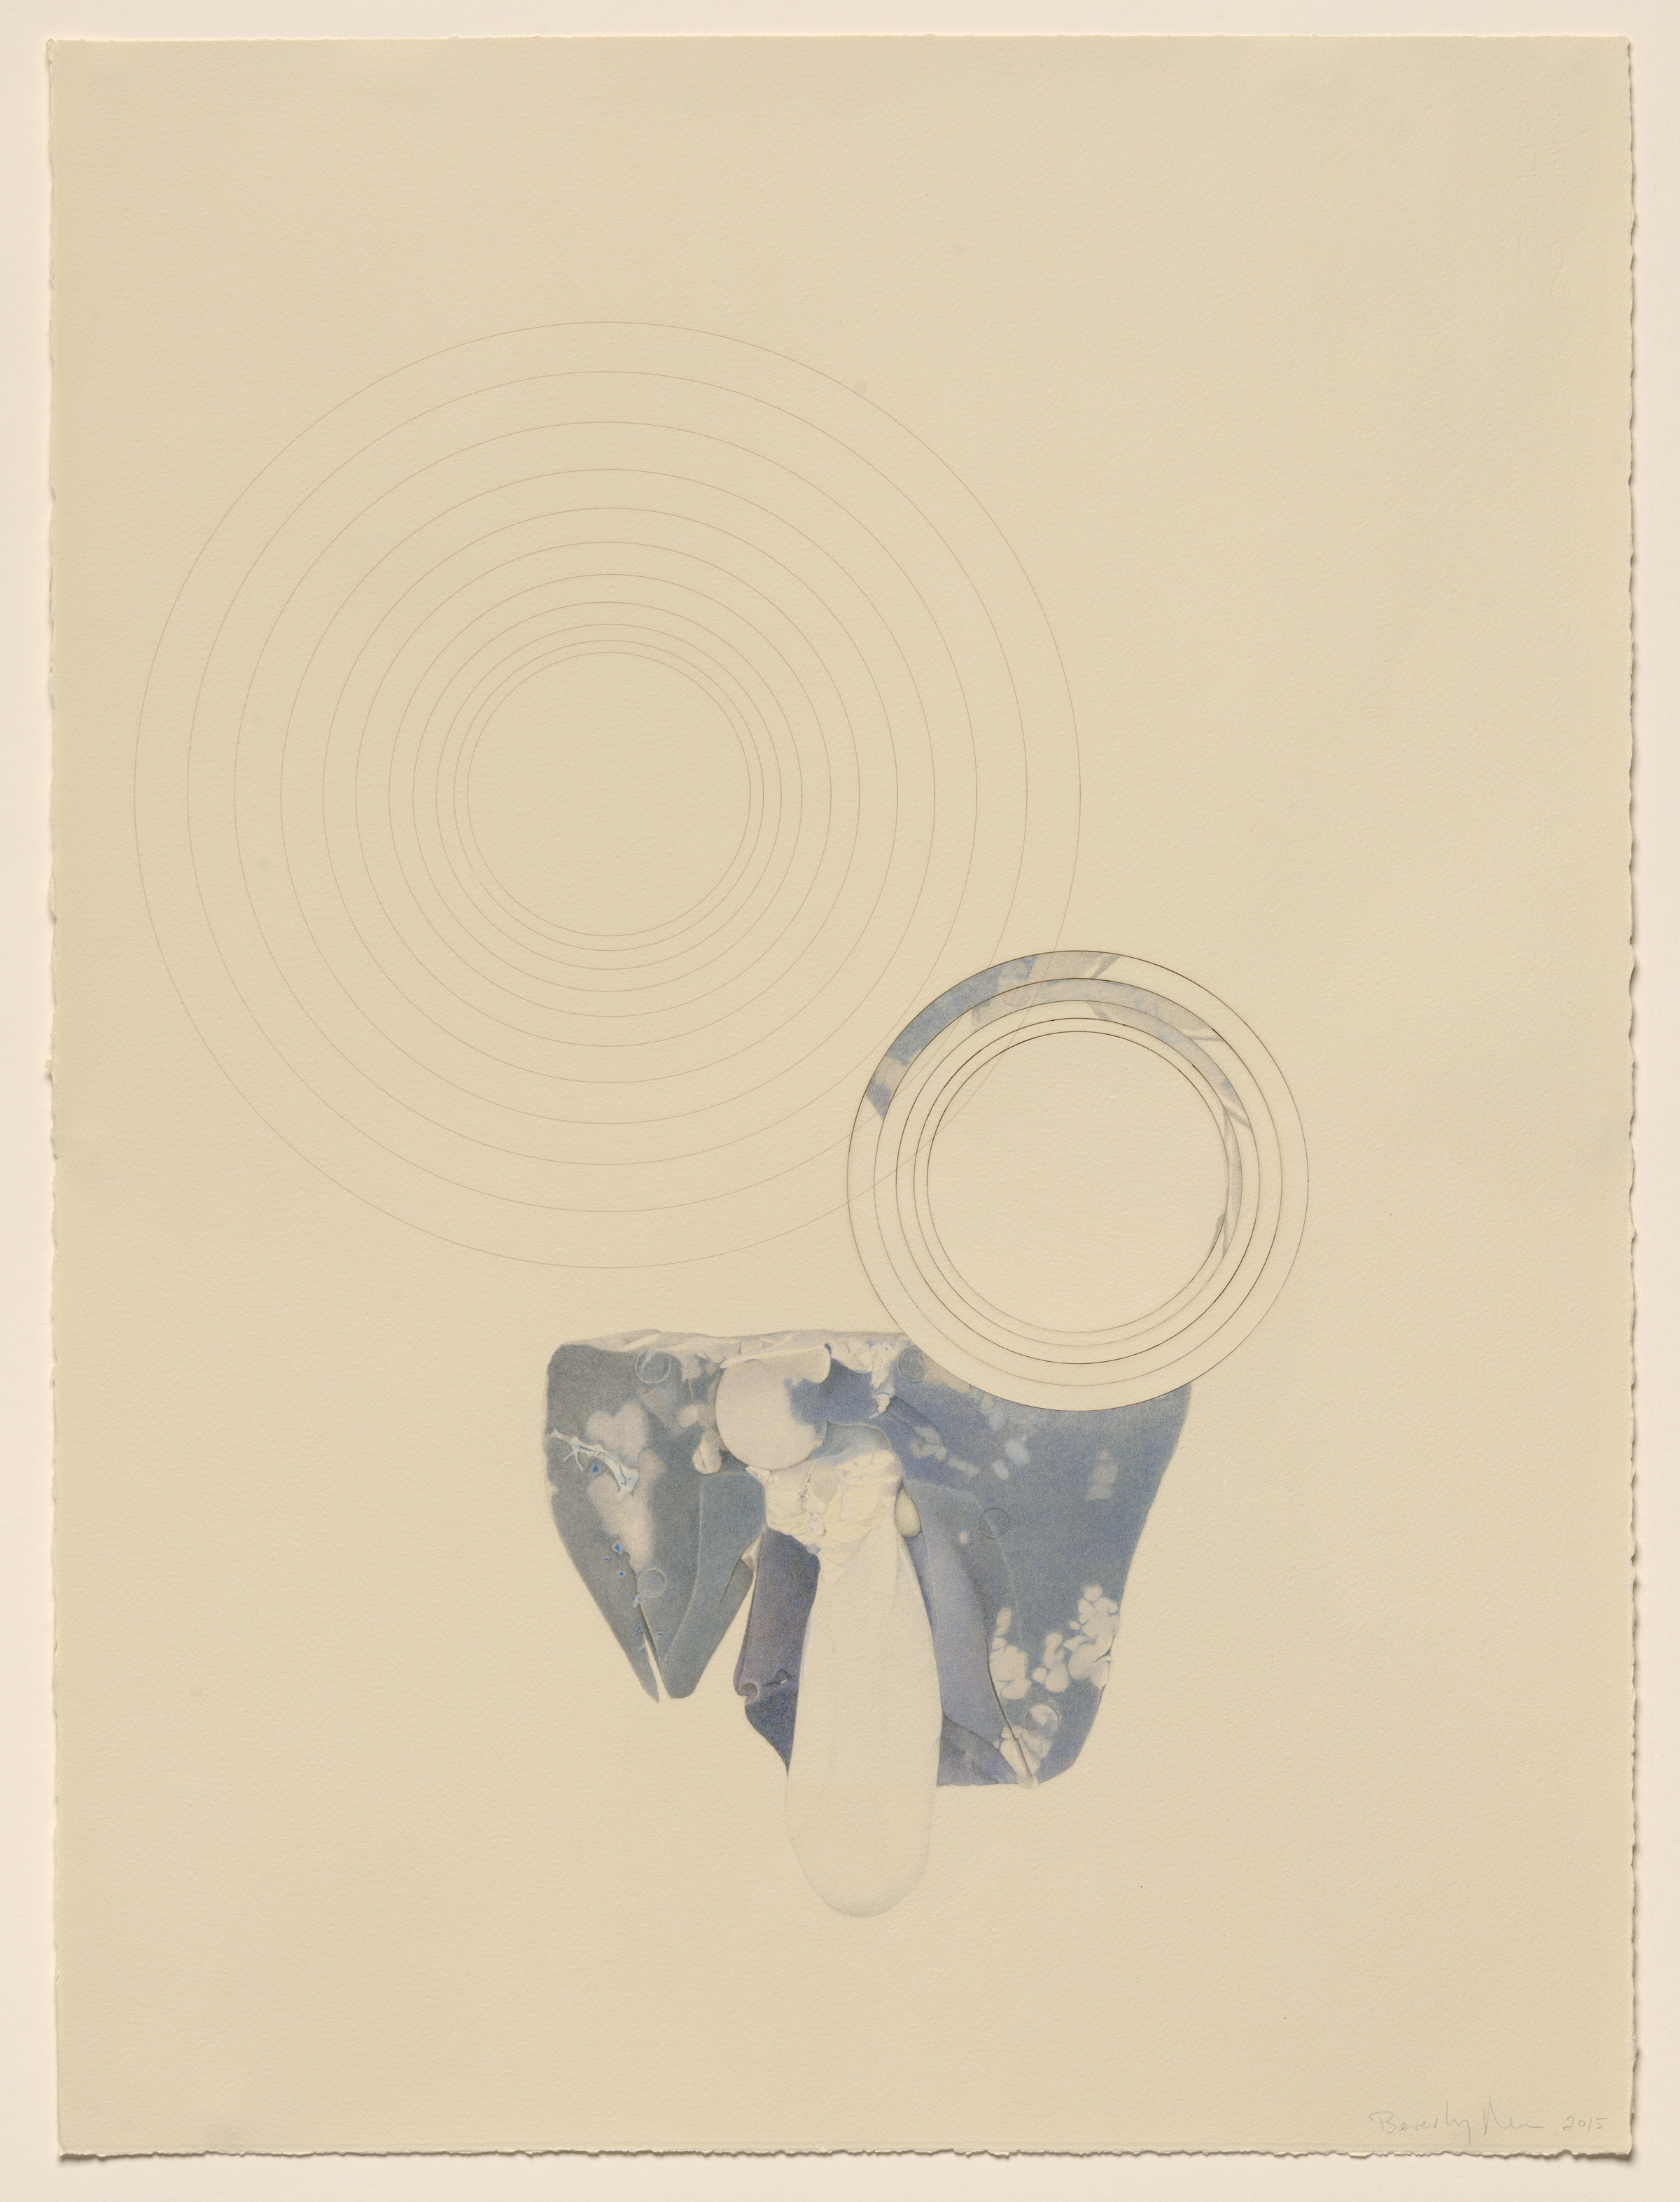 Representational drawing of a liver, on Arches paper, laser-cut and laser-etched.